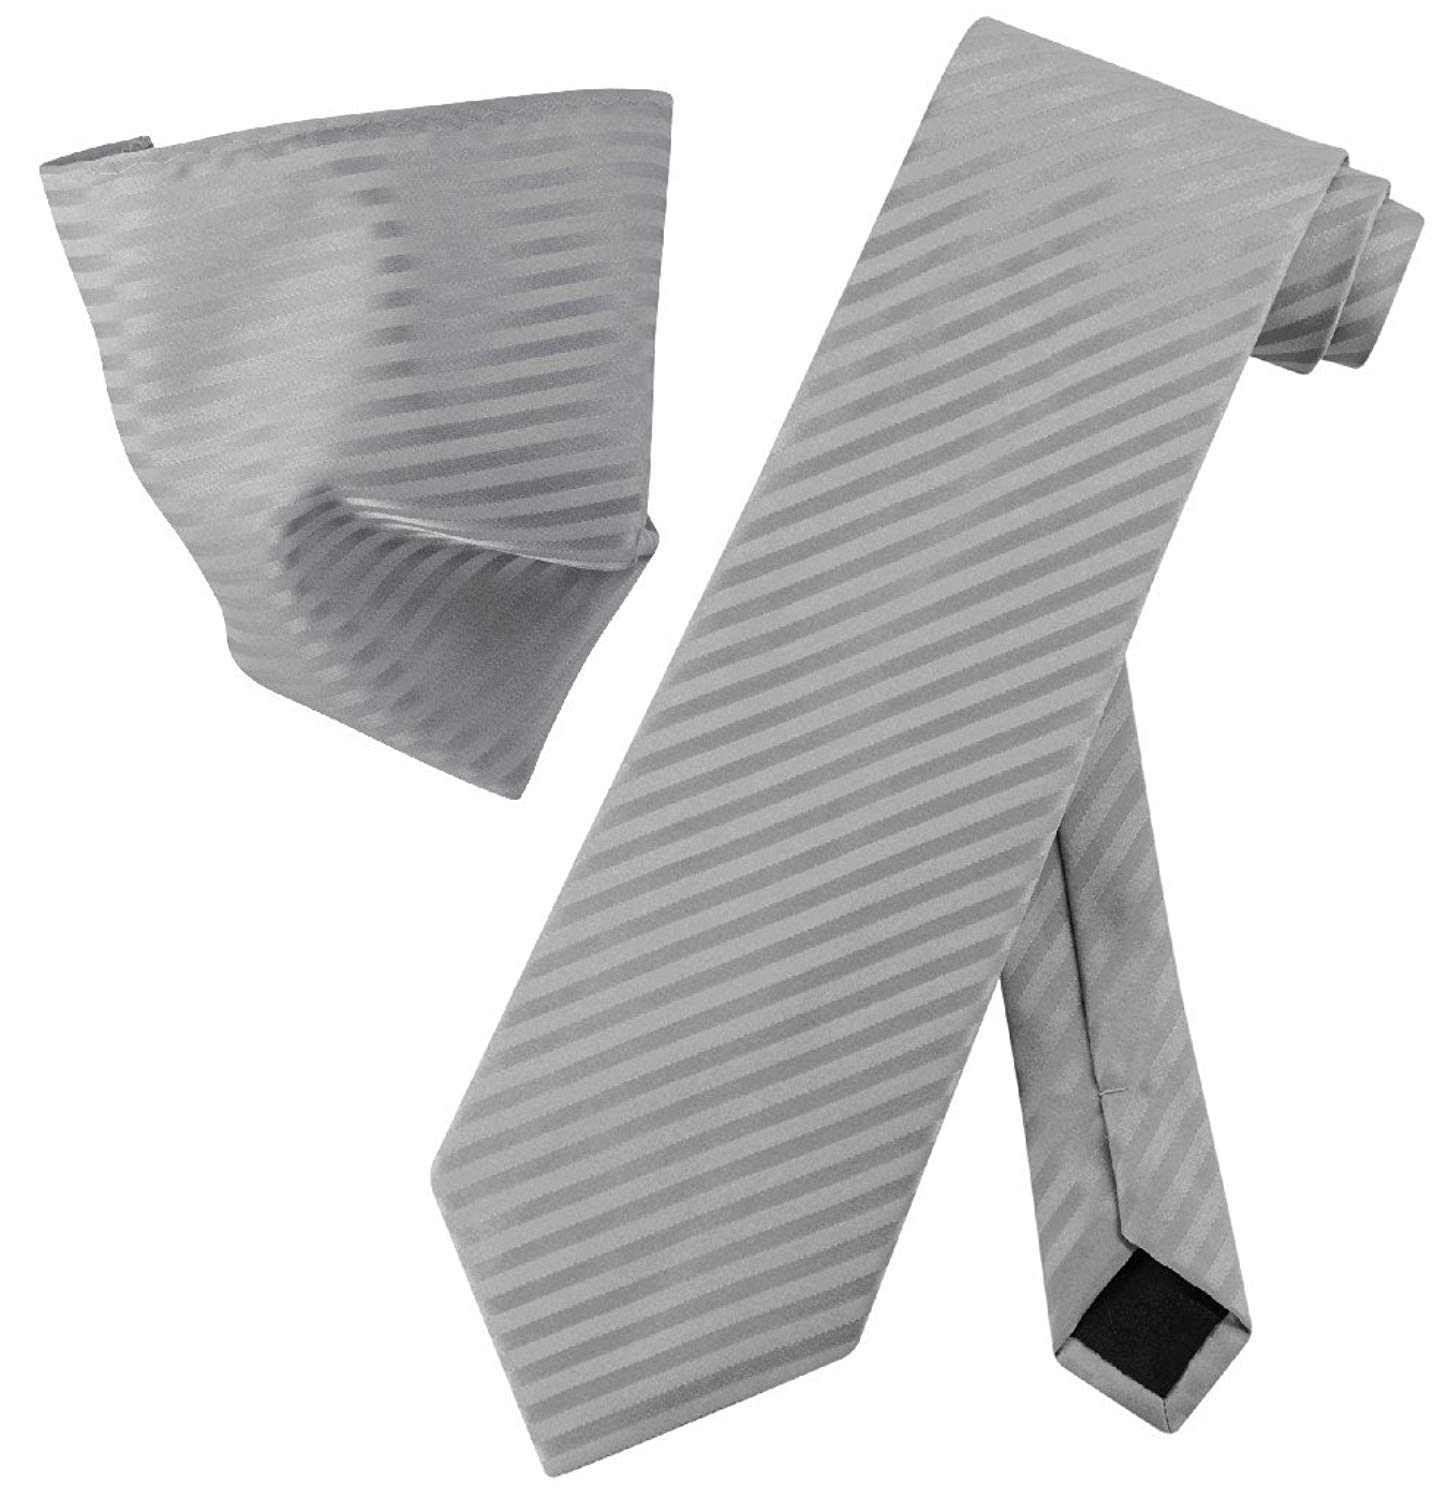 Vesuvio Napoli SILVER GREY Striped NeckTie & Handkerchief Matching Neck Tie Set